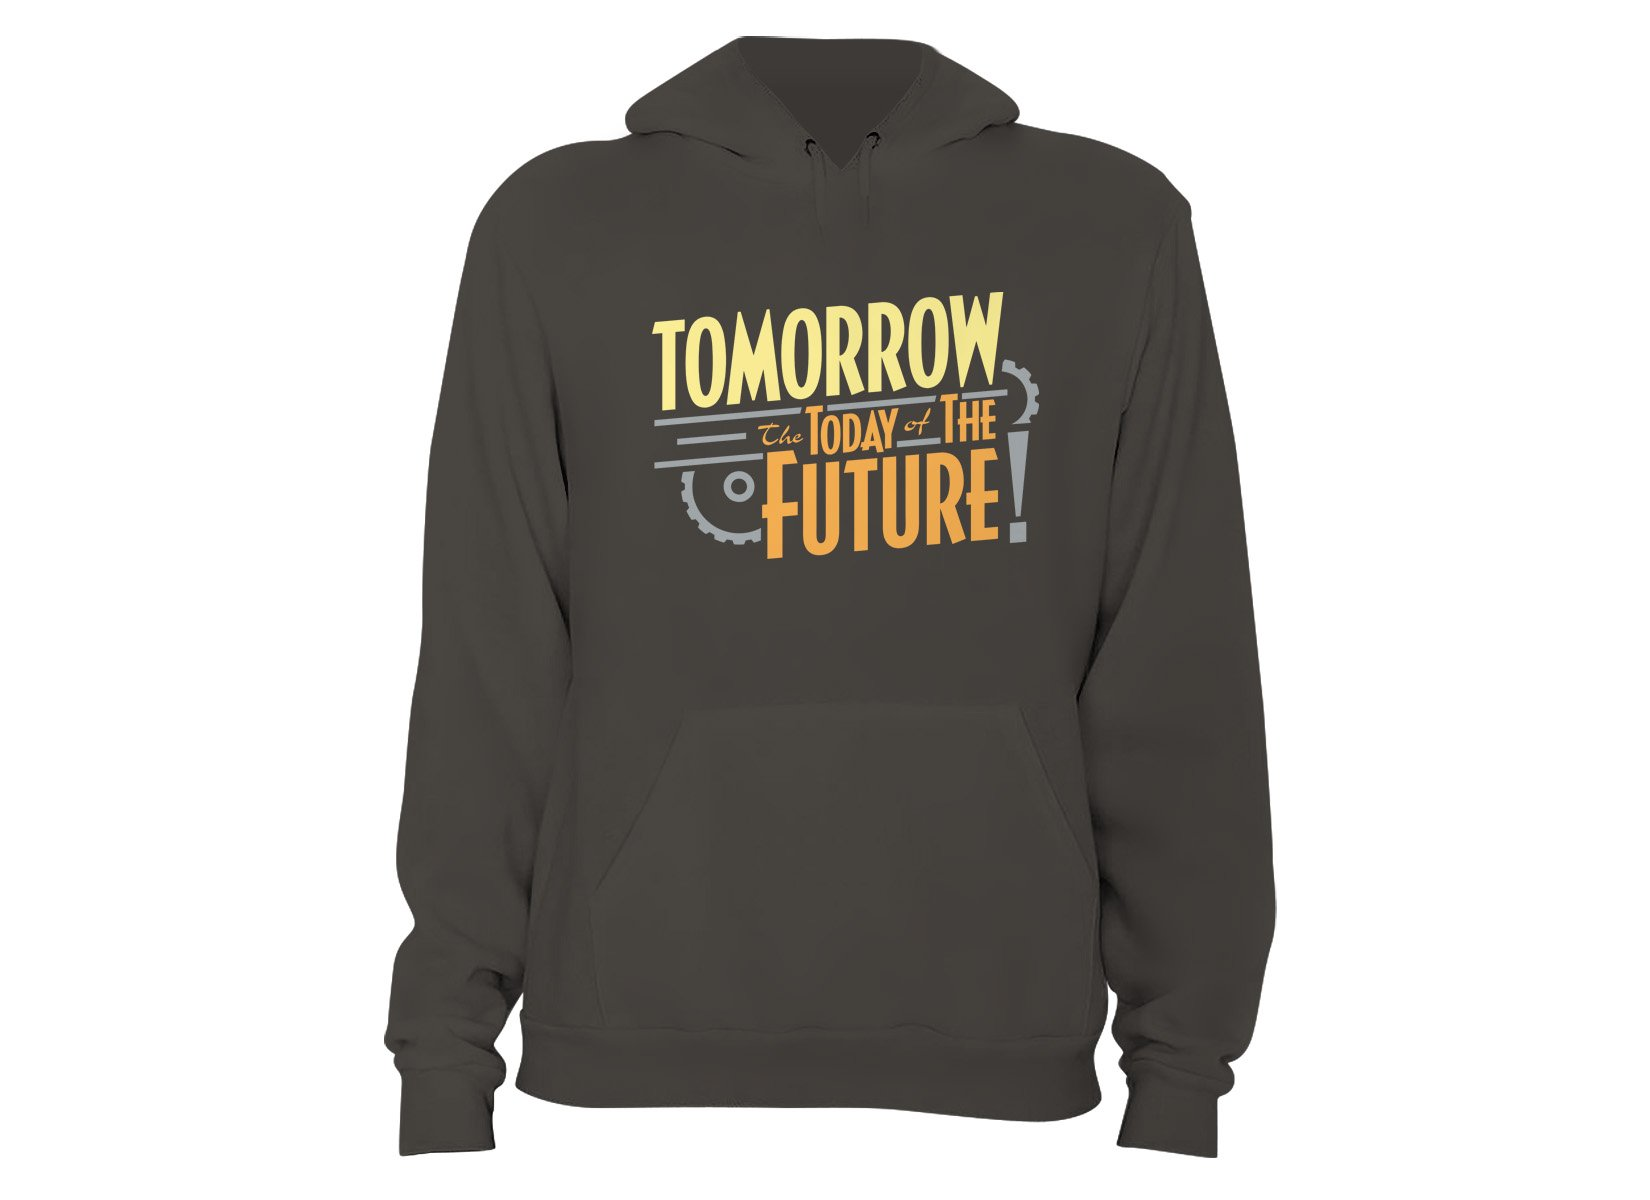 Tomorrow, The Today Of The Future on Hoodie